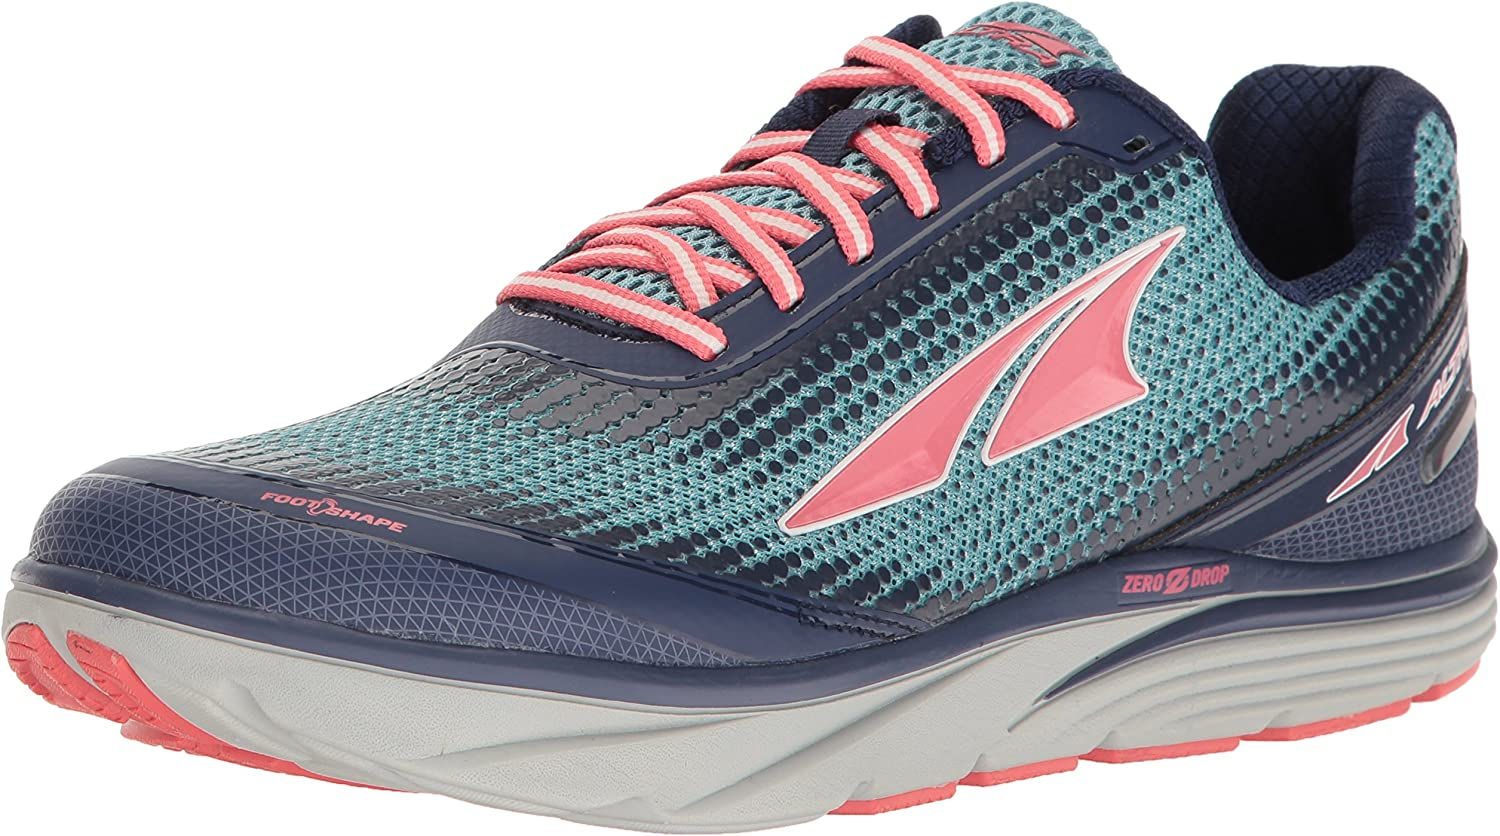 Altra Women's Torin 3.0 Road Running shoes, bluee Coral, 9 B US